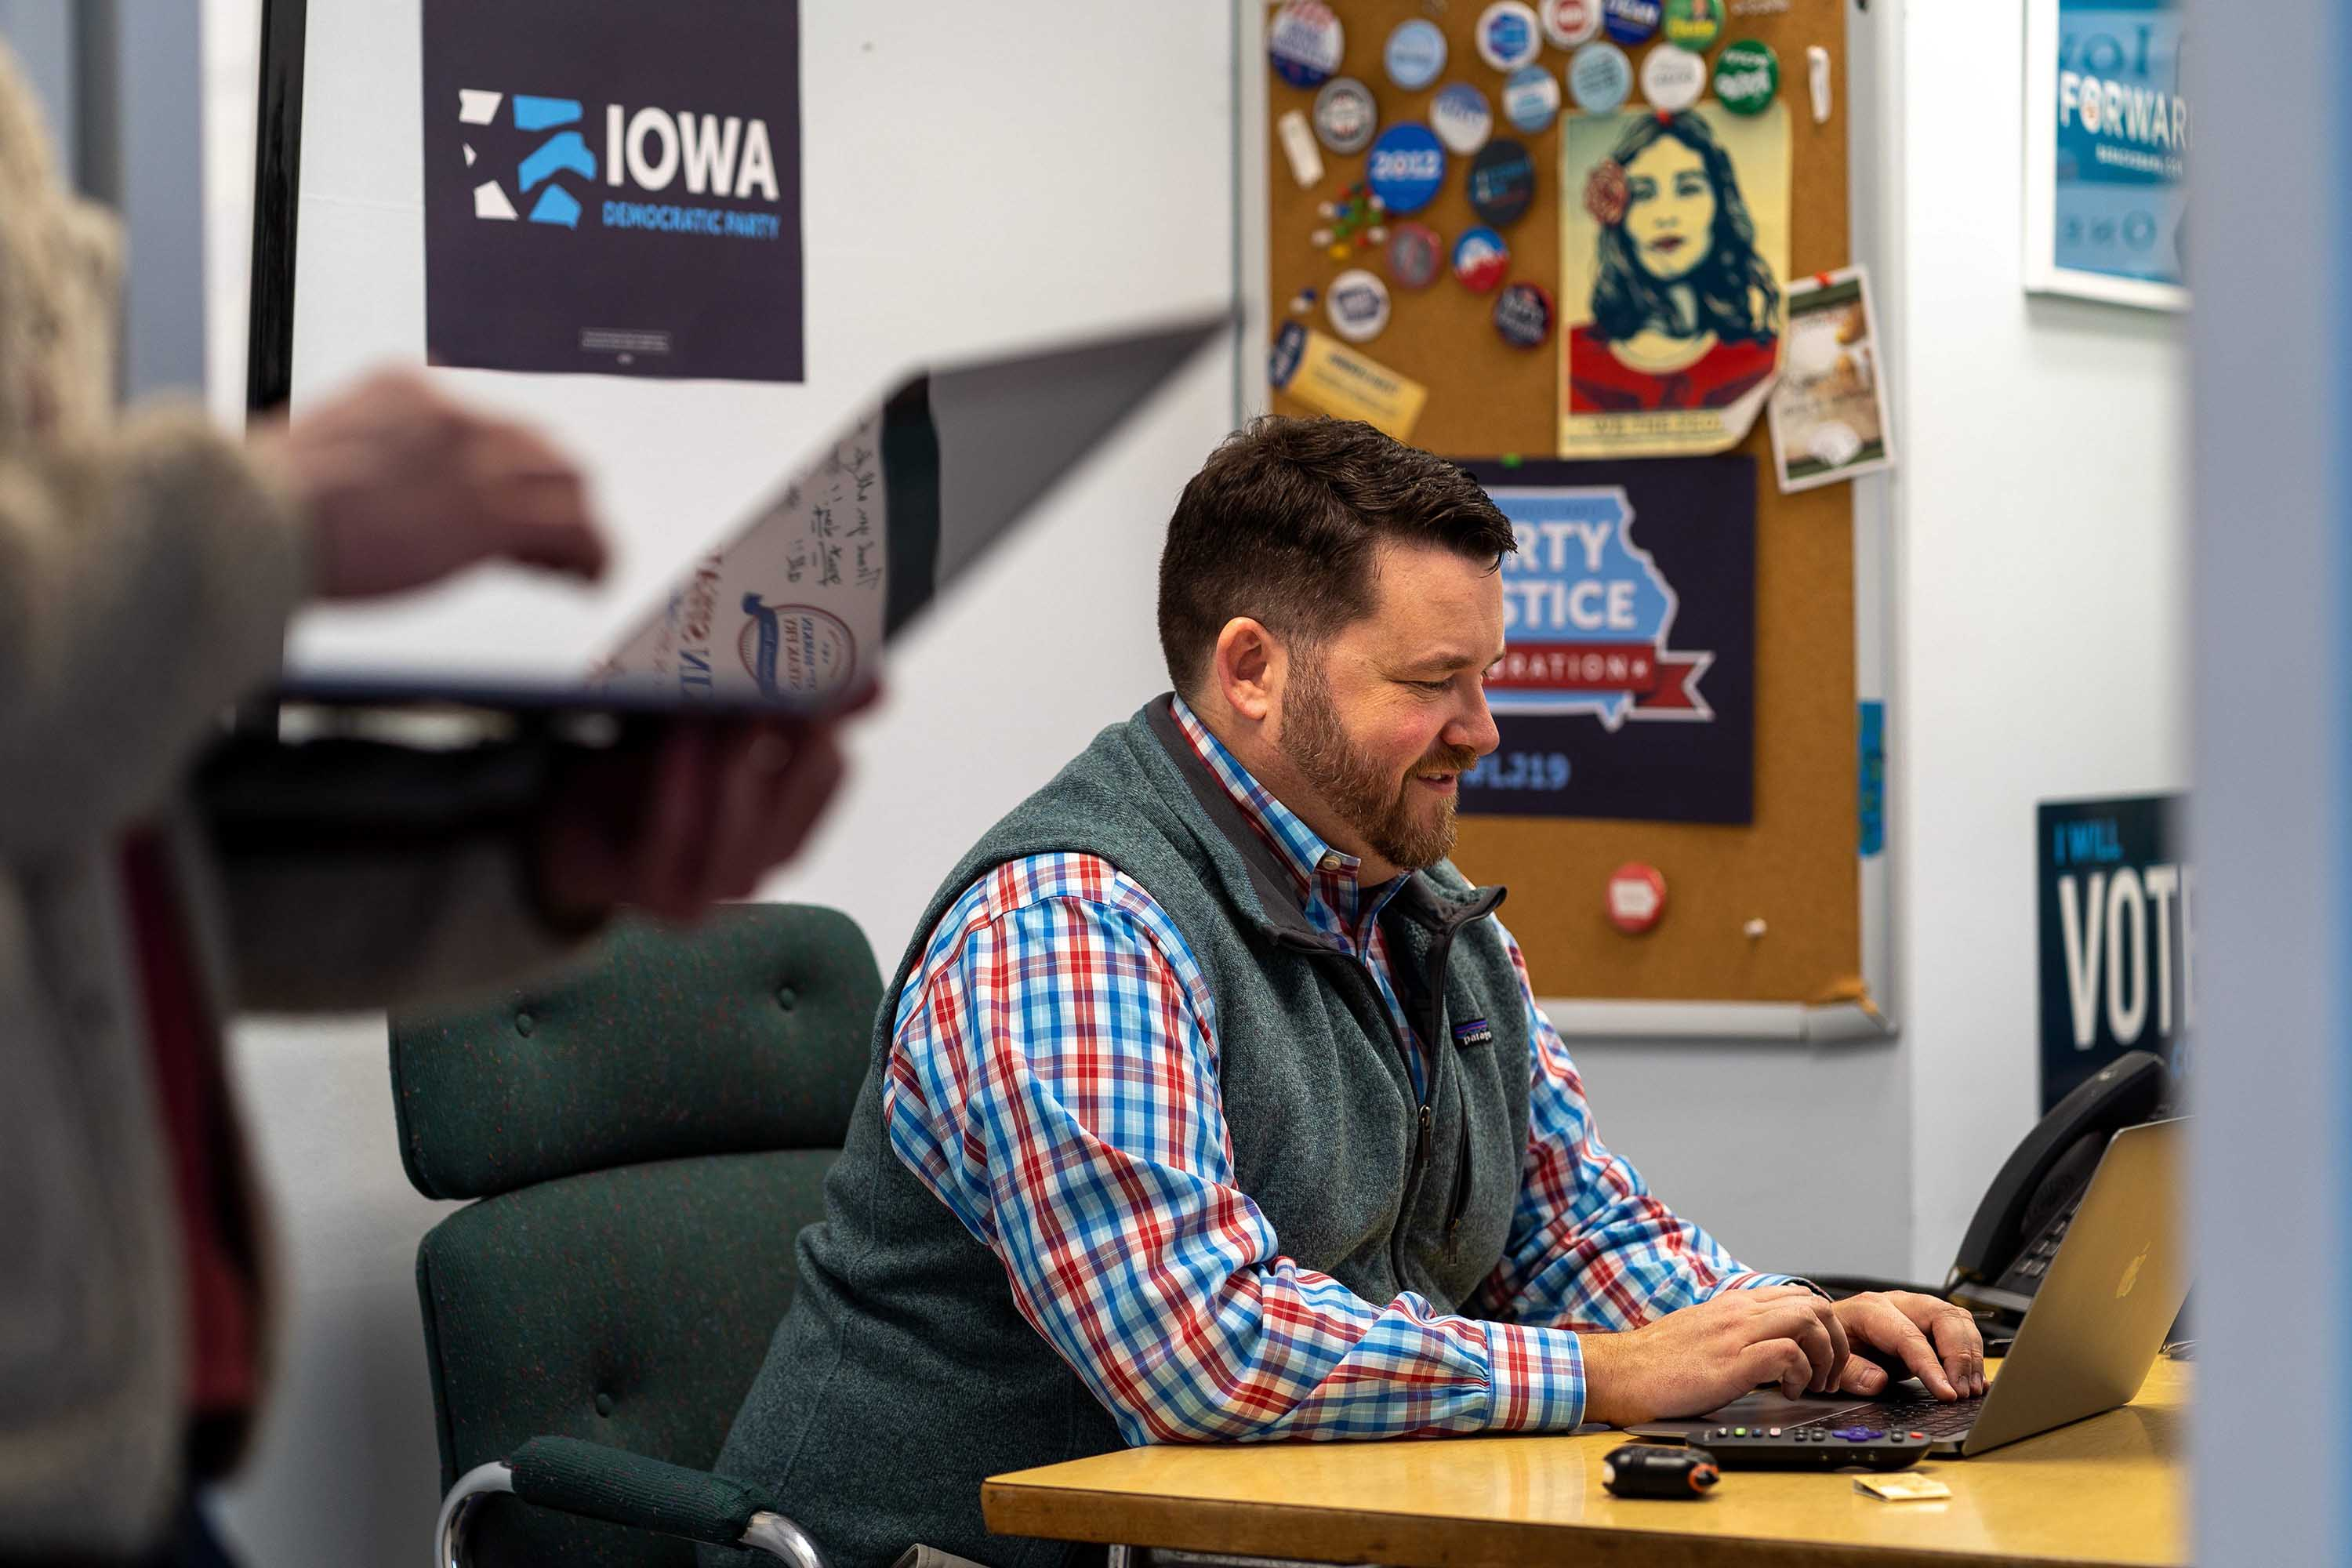 Iowa Democratic Party Chair Troy Price works in his office in Des Moines, Iowa on January 30.